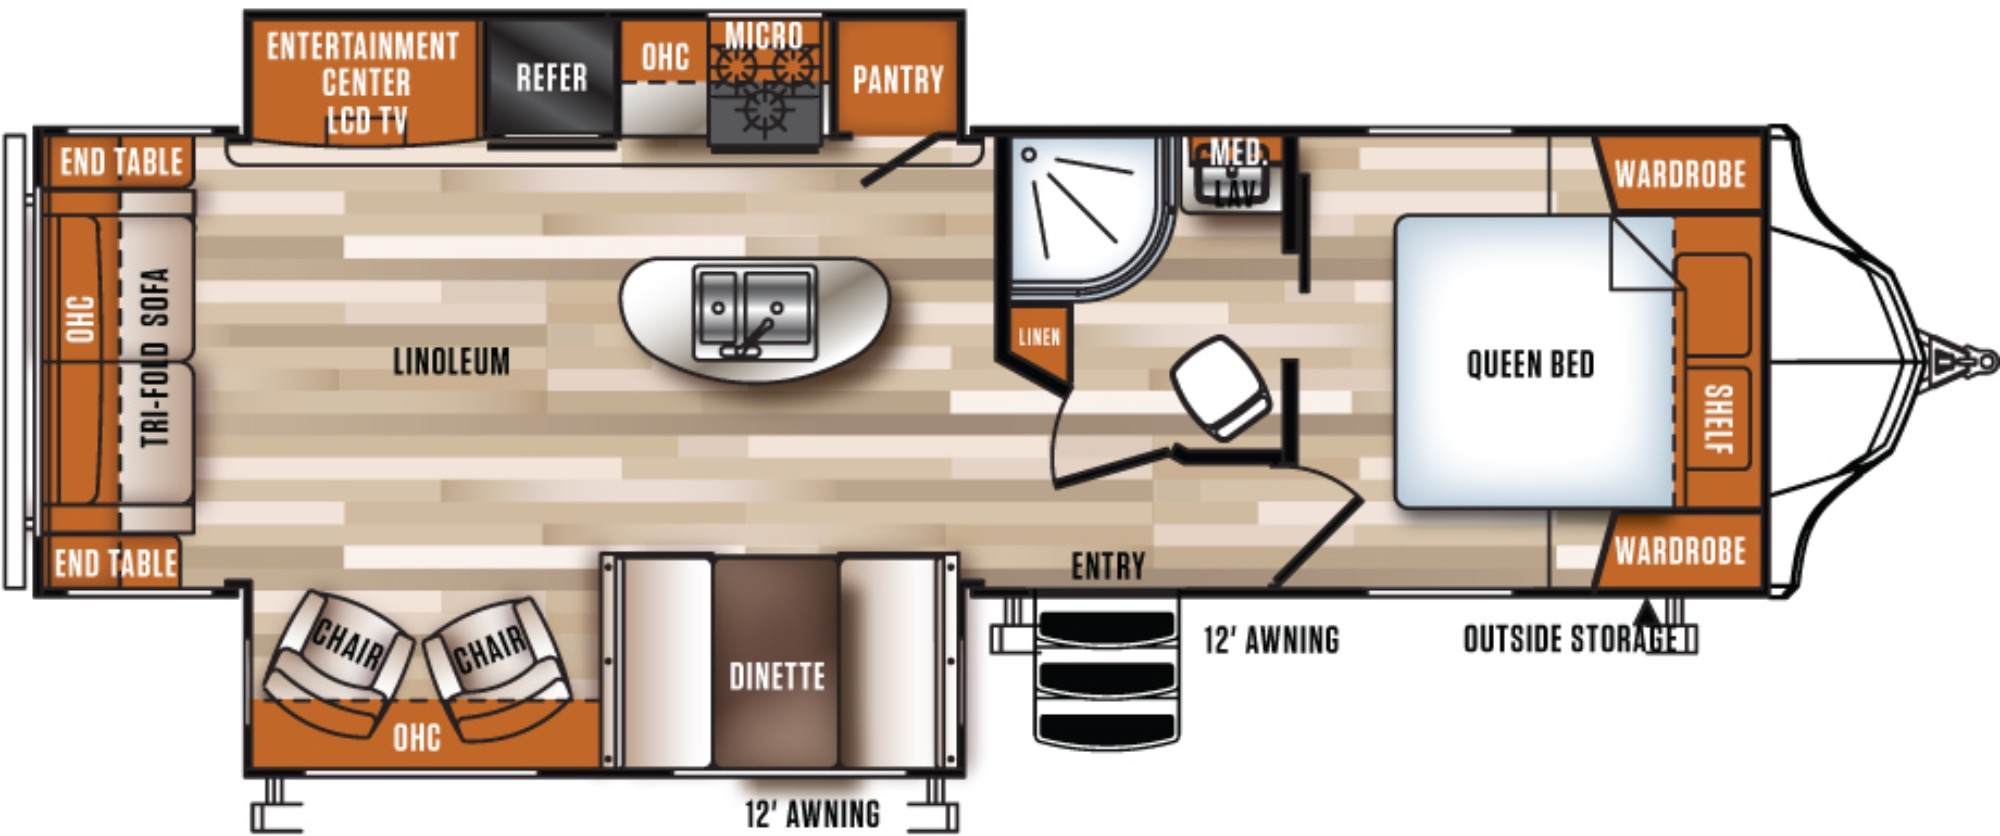 View Floor Plan for 2017 FOREST RIVER VIBE 288RLS